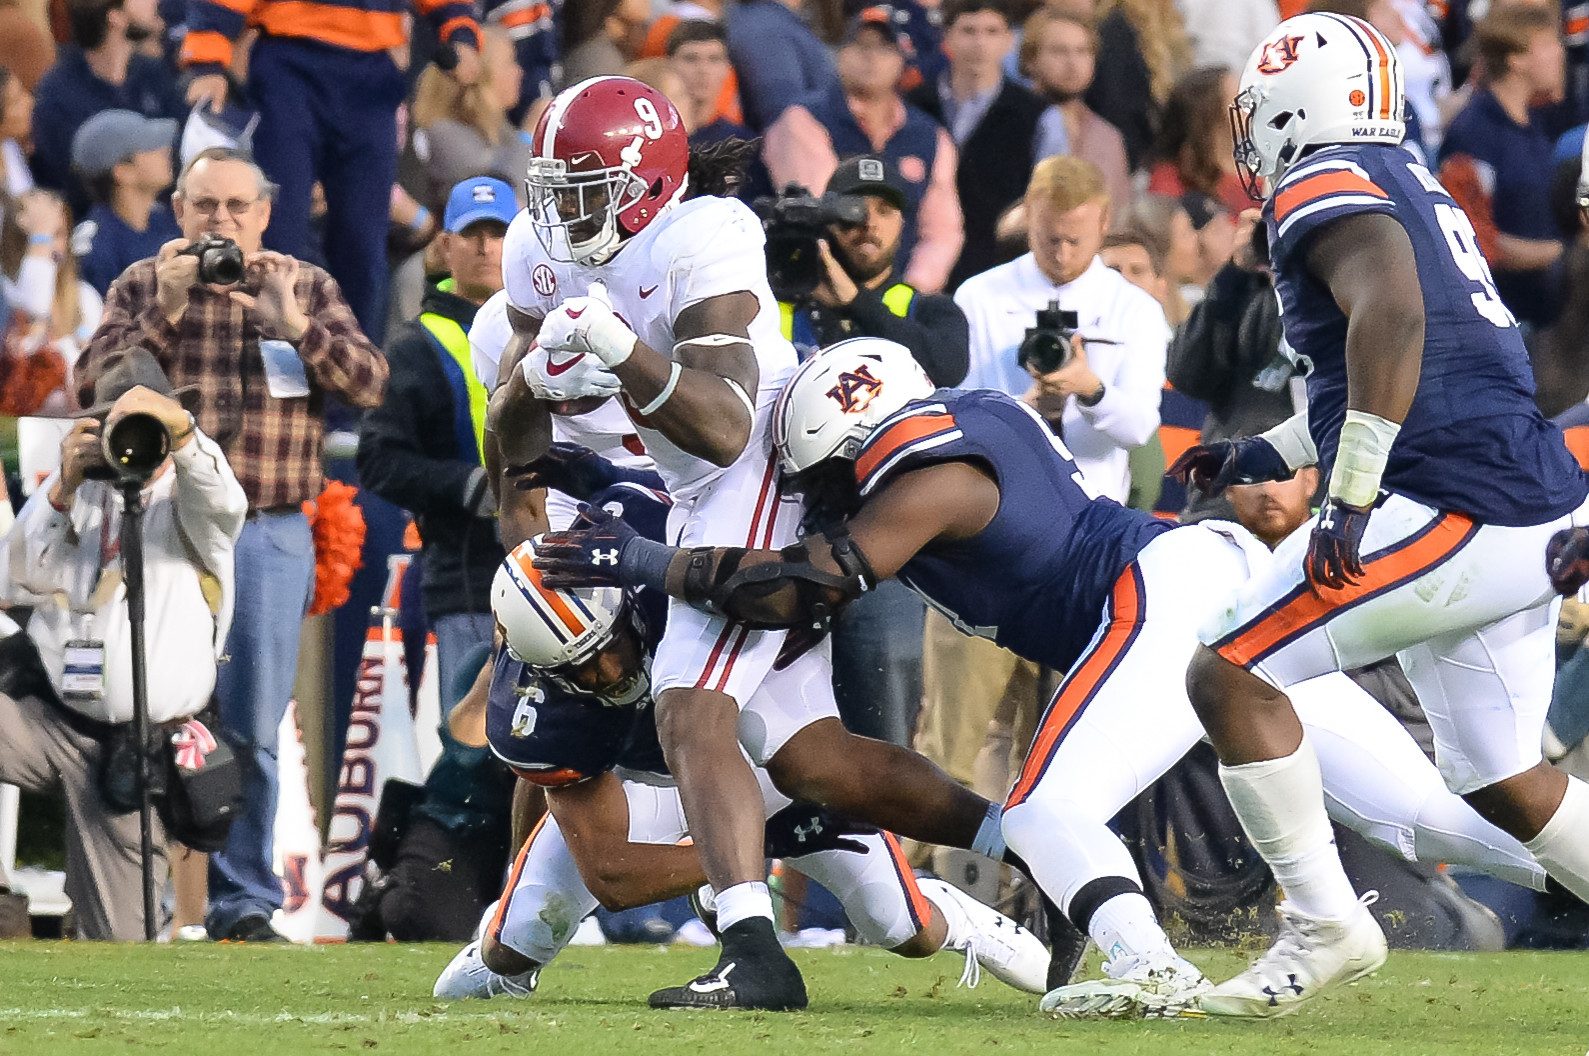 Alabama Crimson Tide running back Bo Scarbrough is tackled by Auburn Tigers defensive back Carlton Davis (6) during the second half during the second half of Auburn's 26-14 win over Alabama Saturday at Jordan-Hare Stadium.